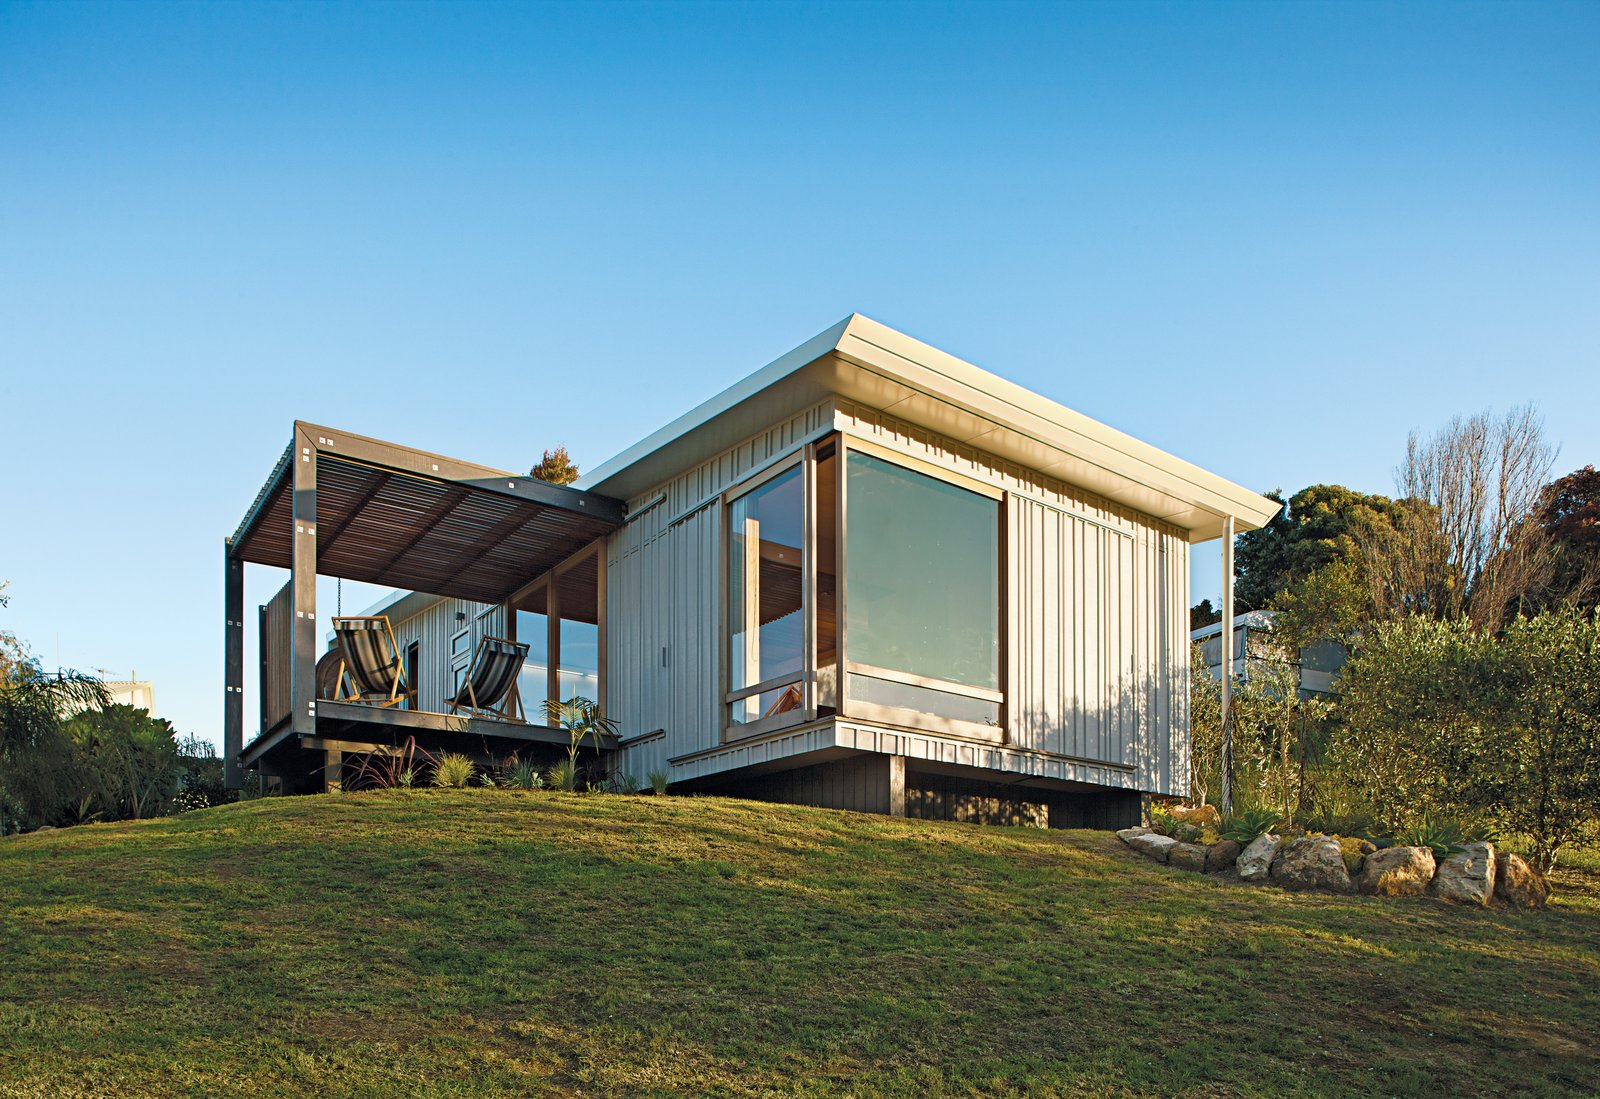 10 coastal prefabs that bring modular housing to the beach dwell